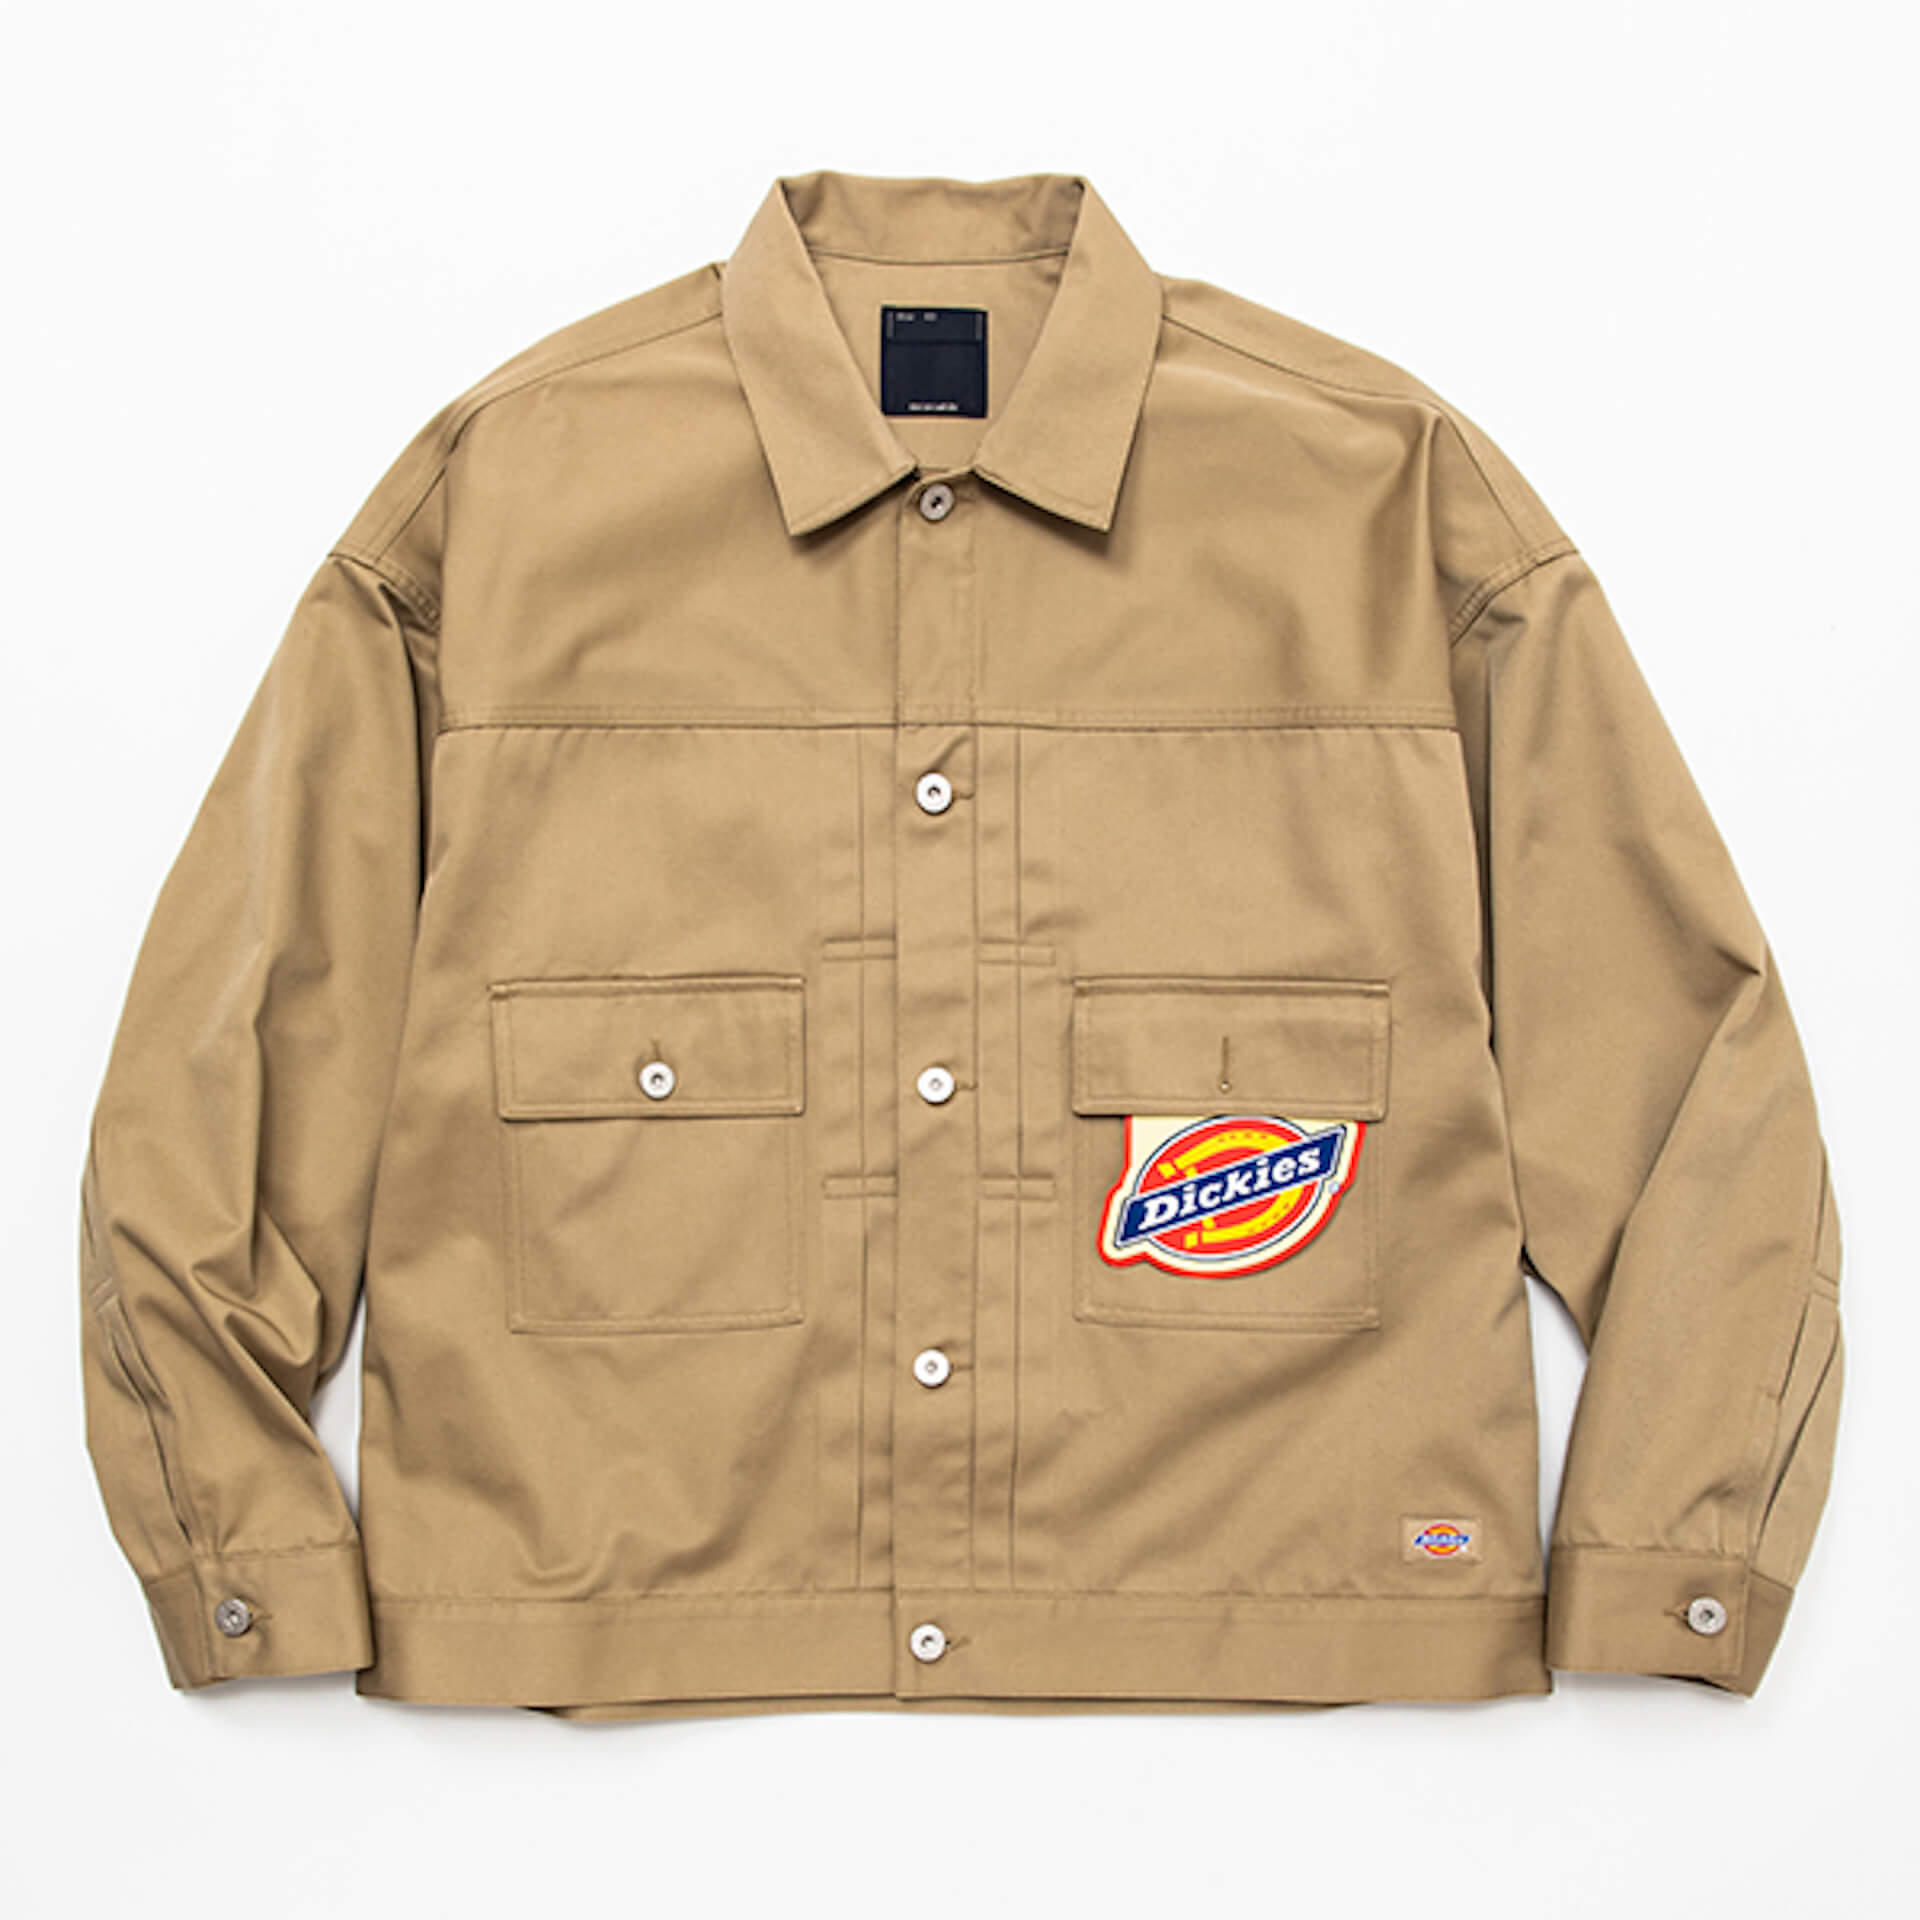 meanswhileとDickiesコラボ第2弾!定番素材を使用したセットアップが登場 lifefashion210901_meanswhile_3